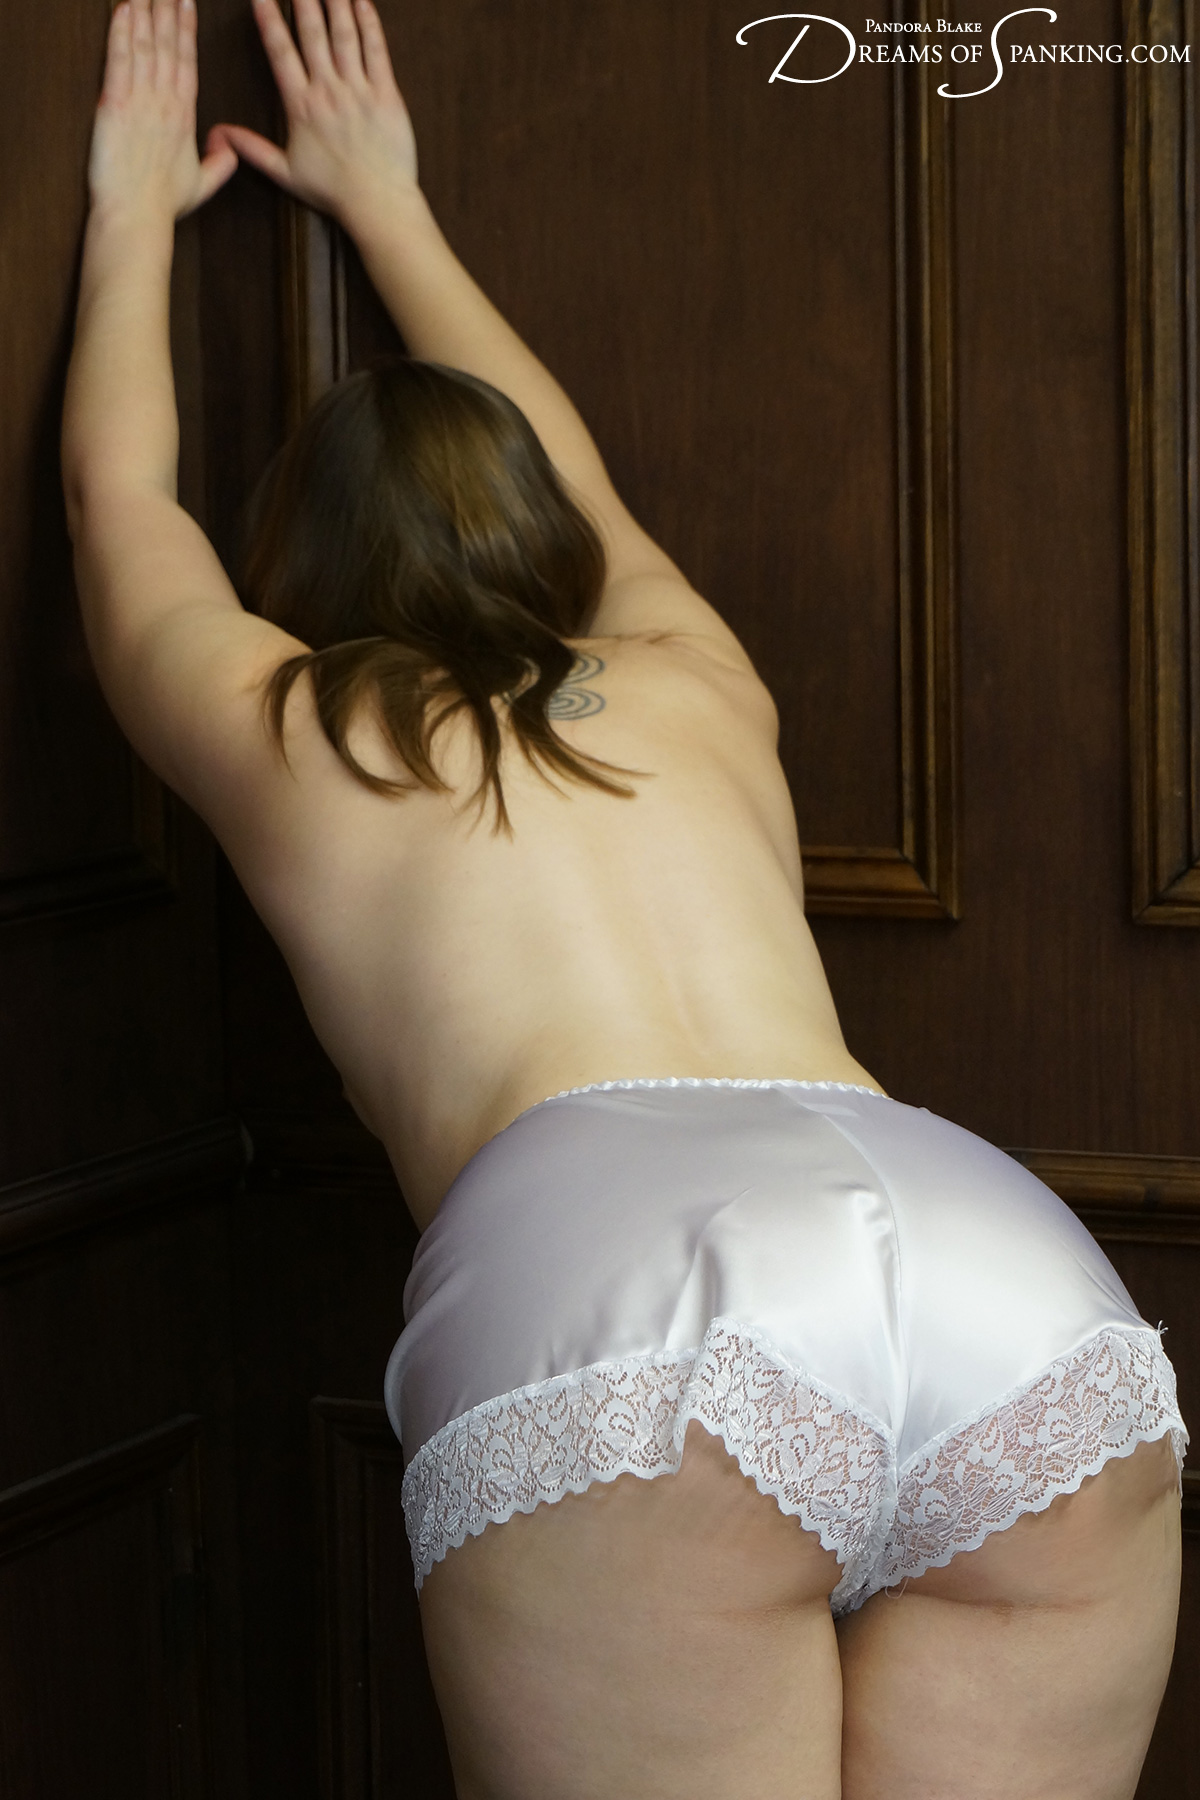 Pandora Blake in full French knickers at Dreams of Spanking